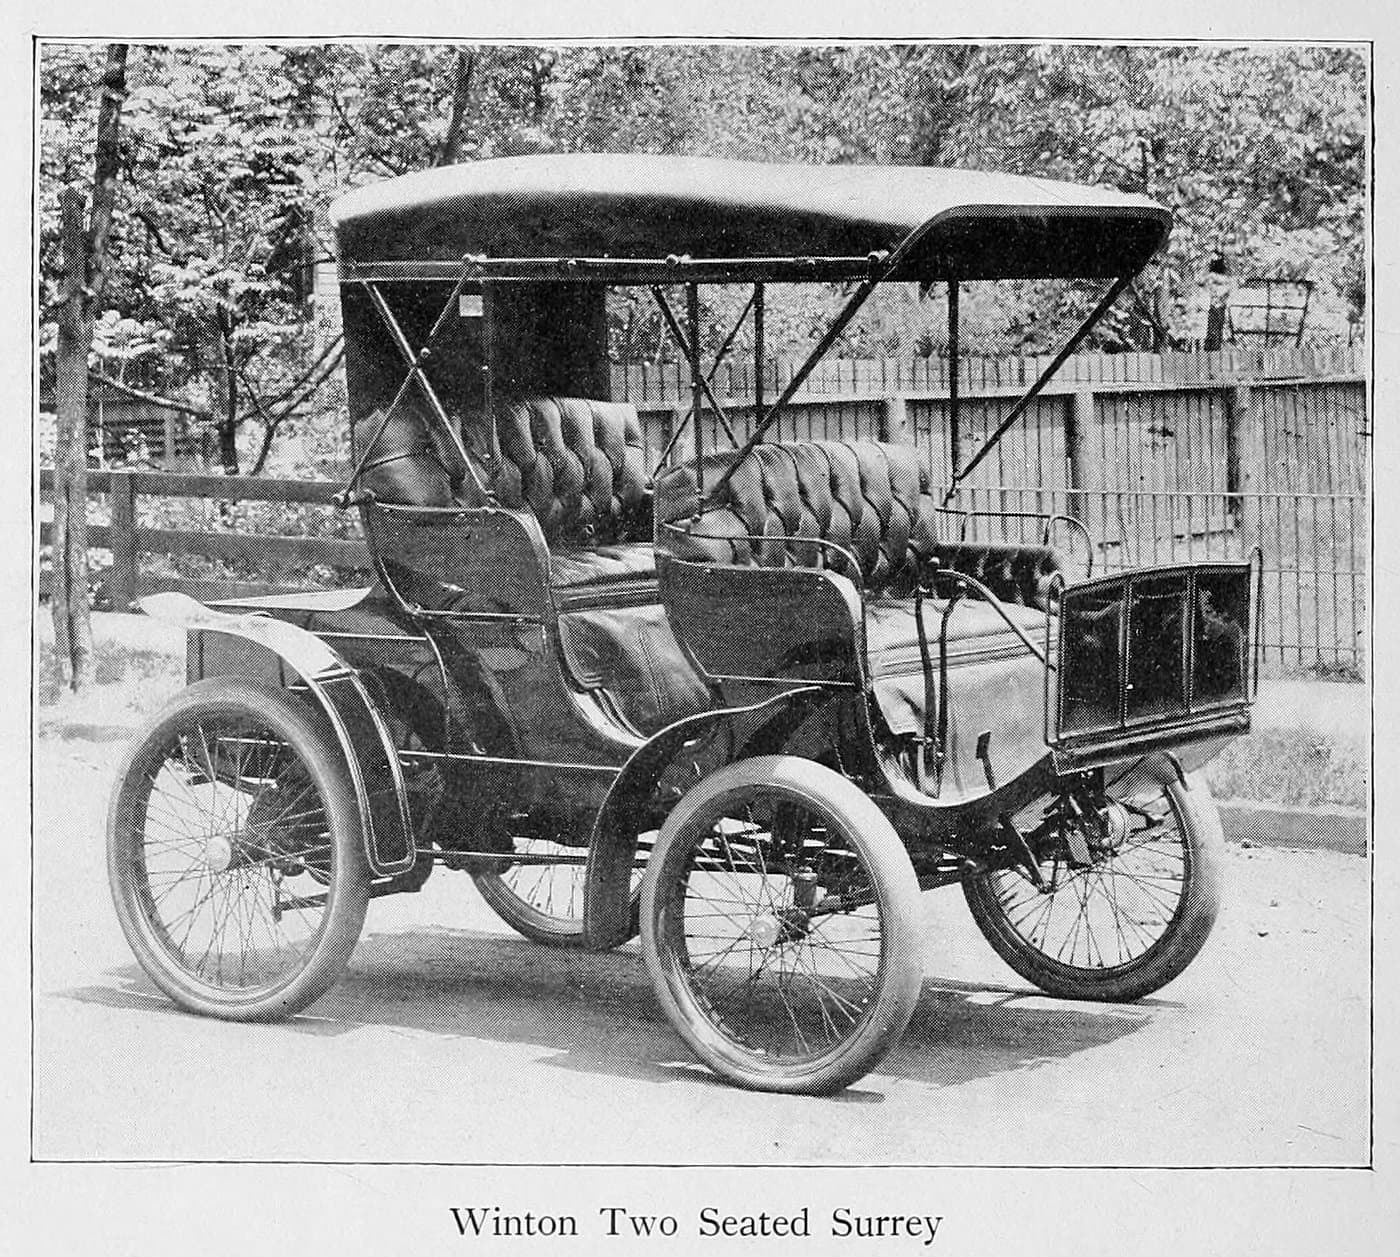 Winton two seated Surrey (1900)